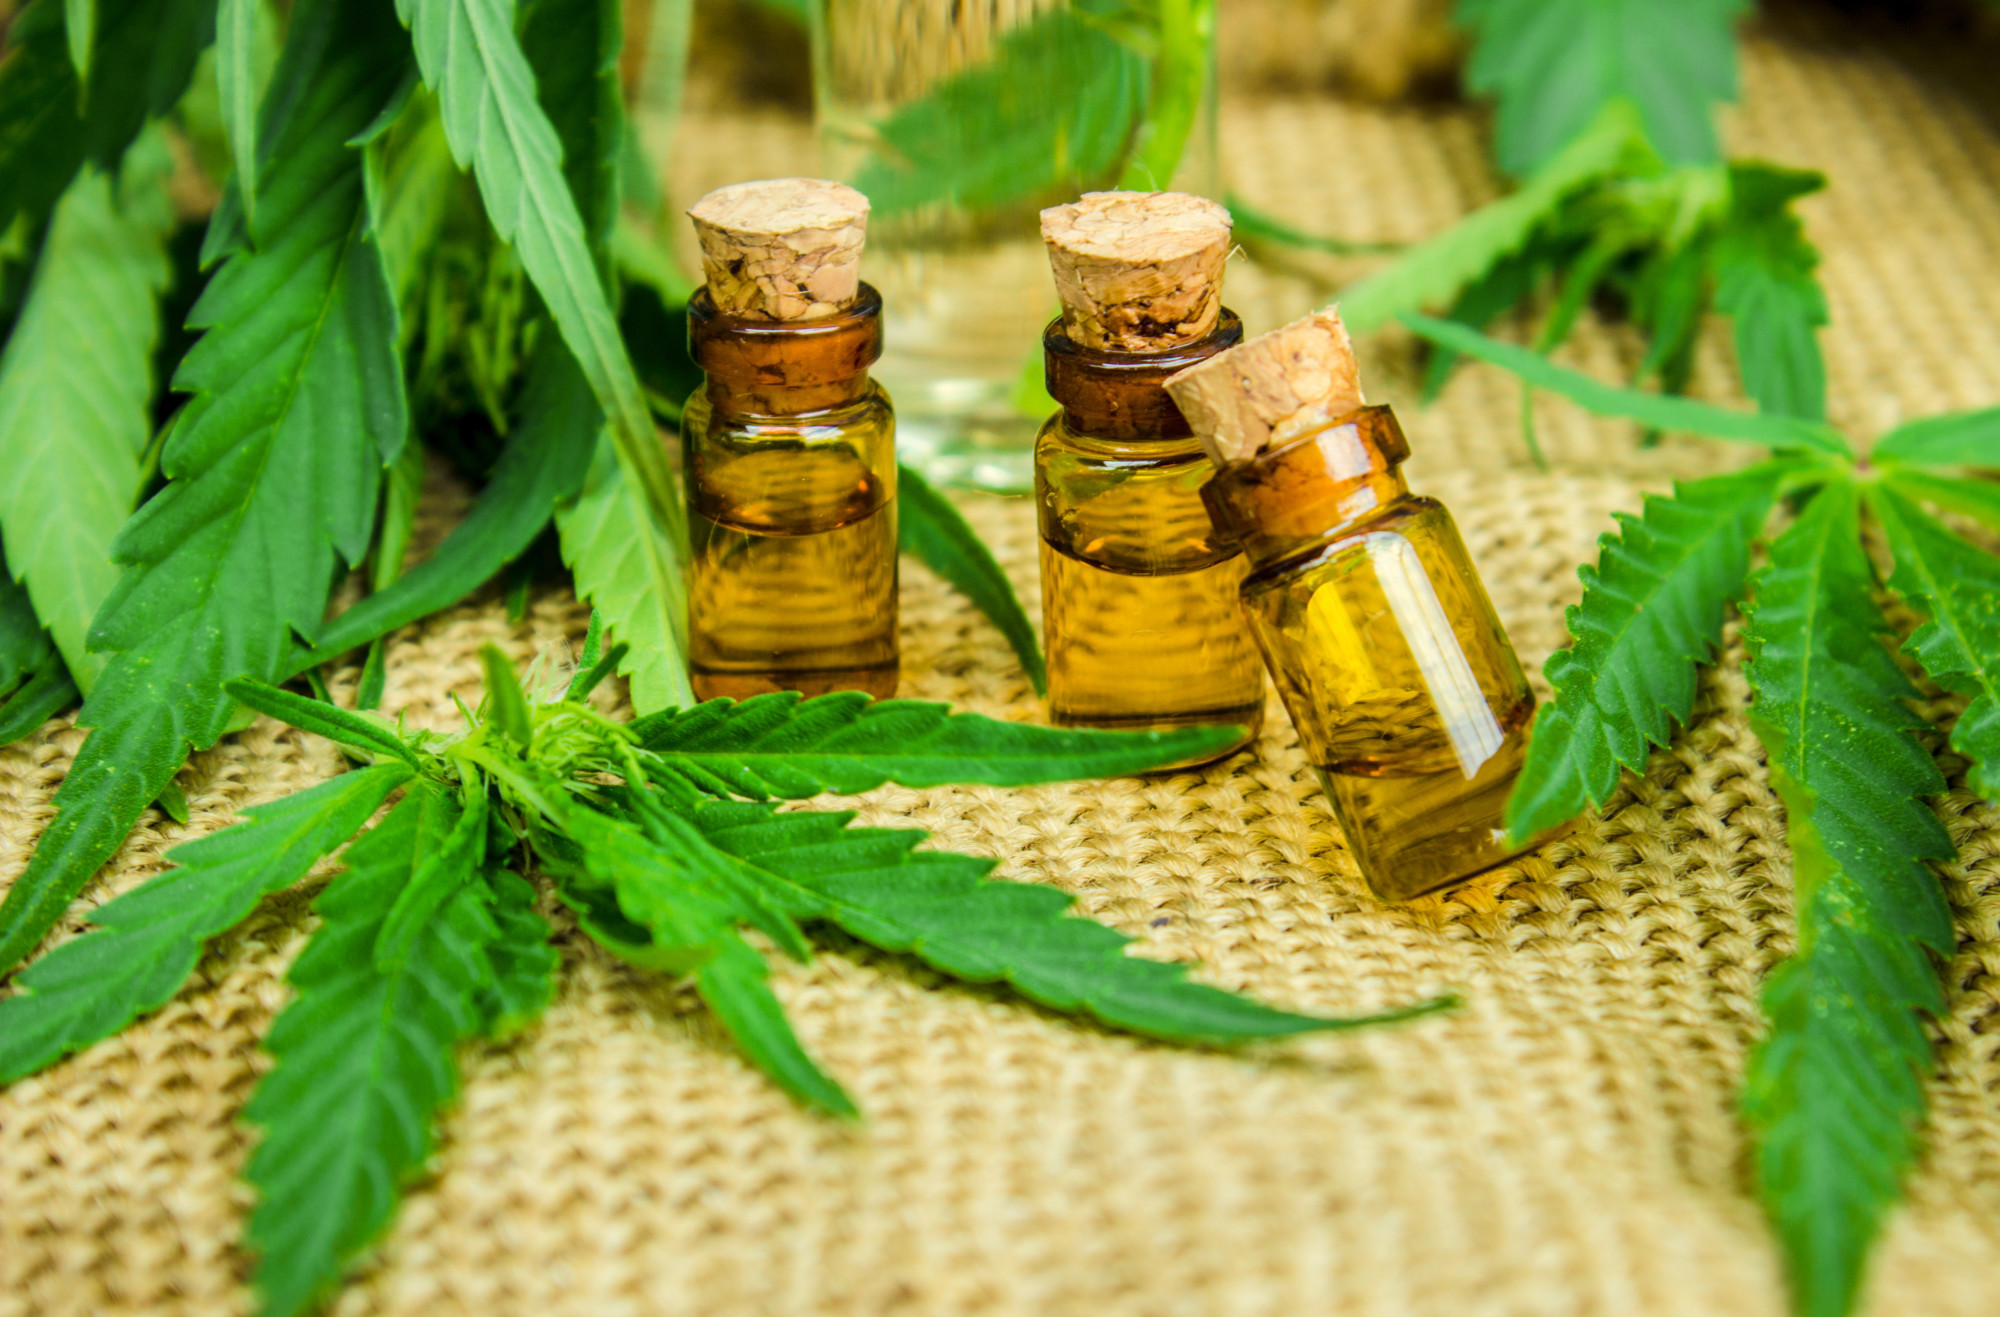 Purchasing CBD Products Safely Online